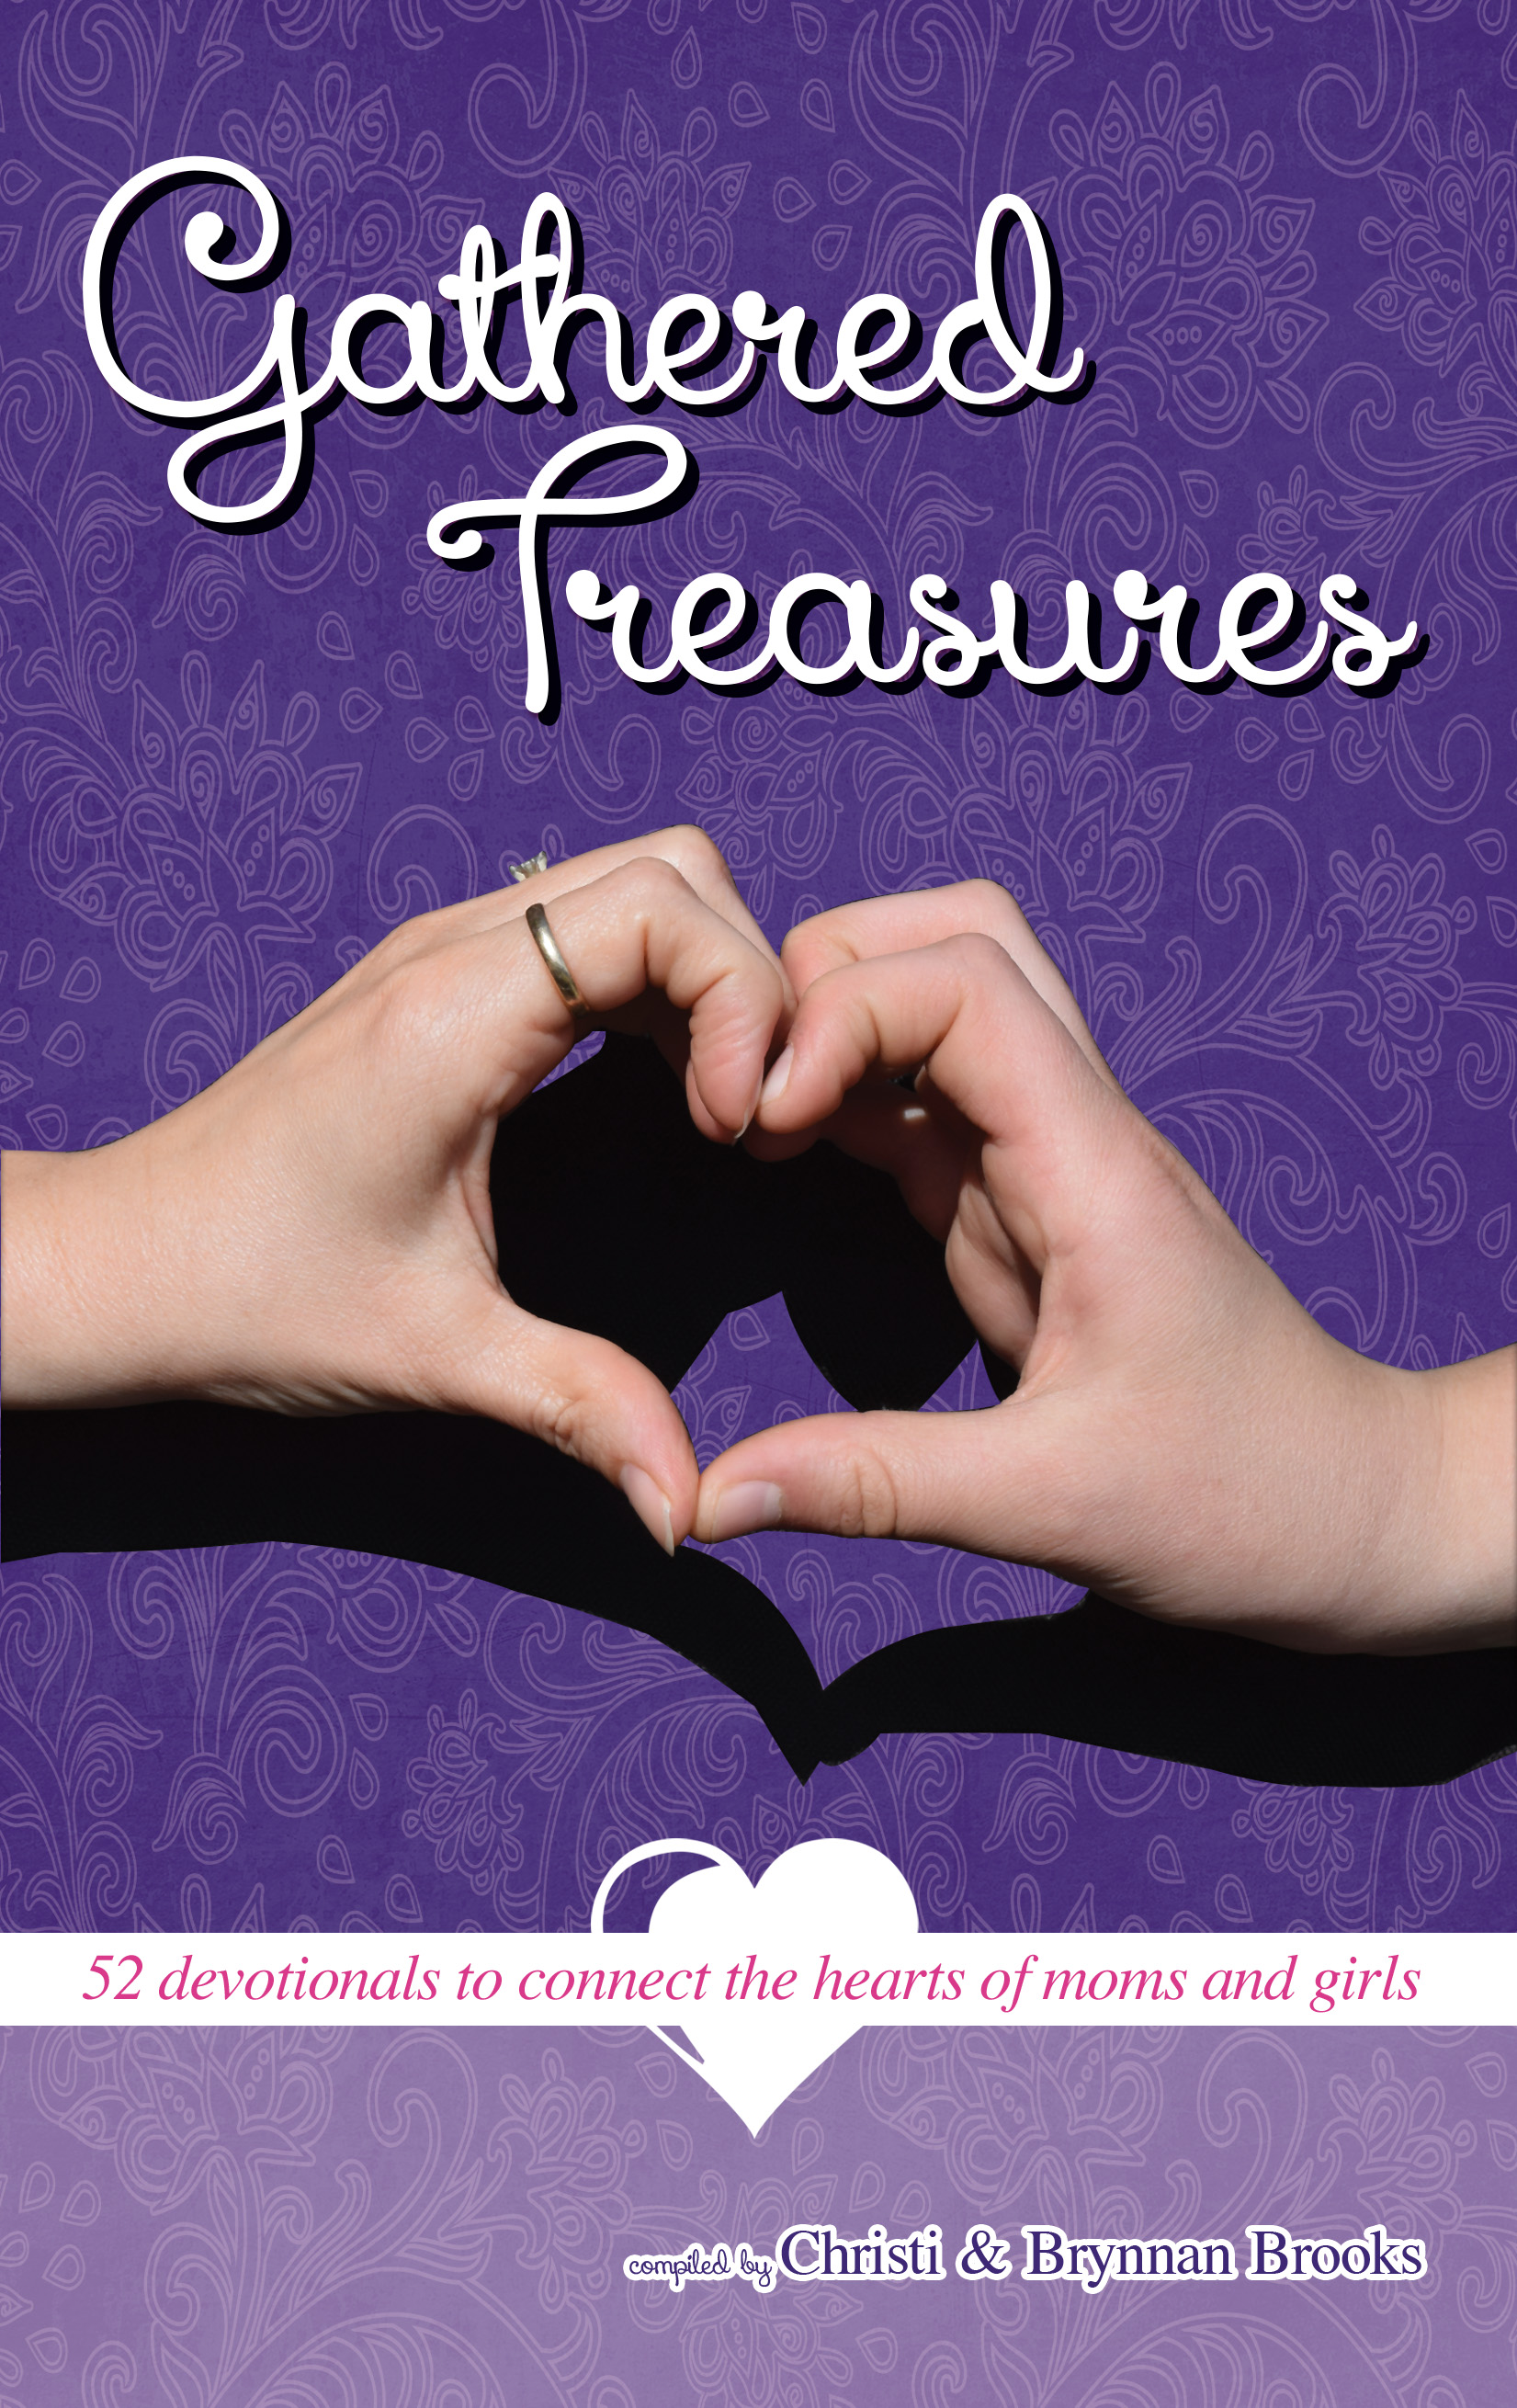 Mother-daughter devotional Gathered Treasures